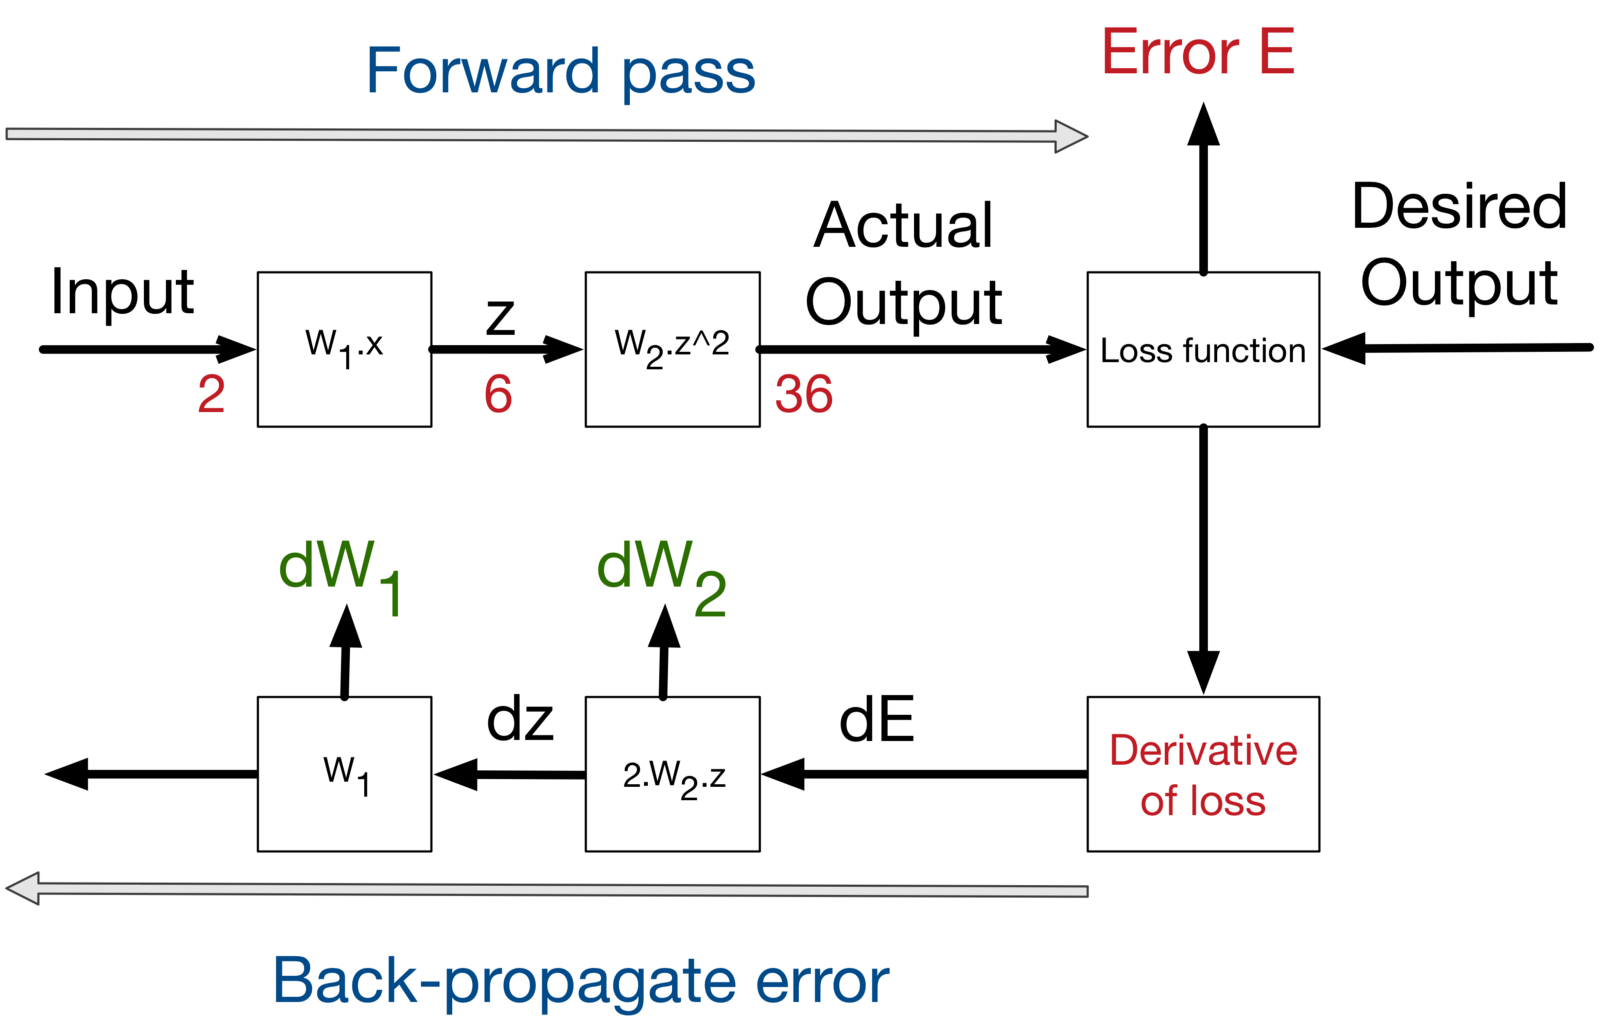 Neural Networks And Backpropagation Explained In A Simple Way S Parameter Test Set Block Diagram Of Forward Backward Paths